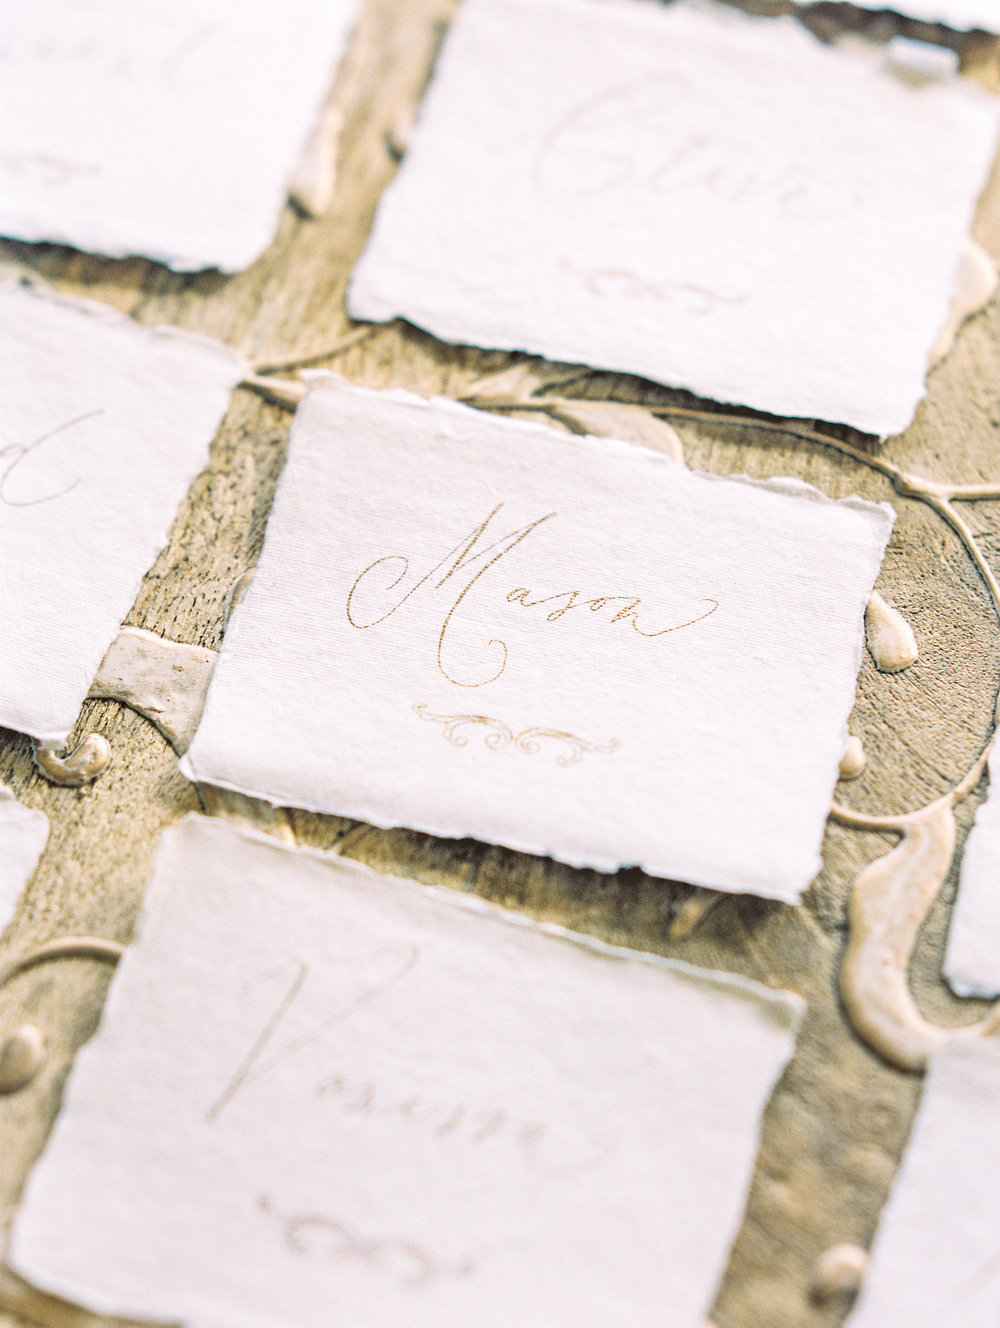 Paper Goods & Calligraphy: Spurlé Gul Studio | Photography: Lissa Ryan Photography | Planning & Creative Direction: Claire Duran Wedding & Events | Venue: Dover Hall Estate